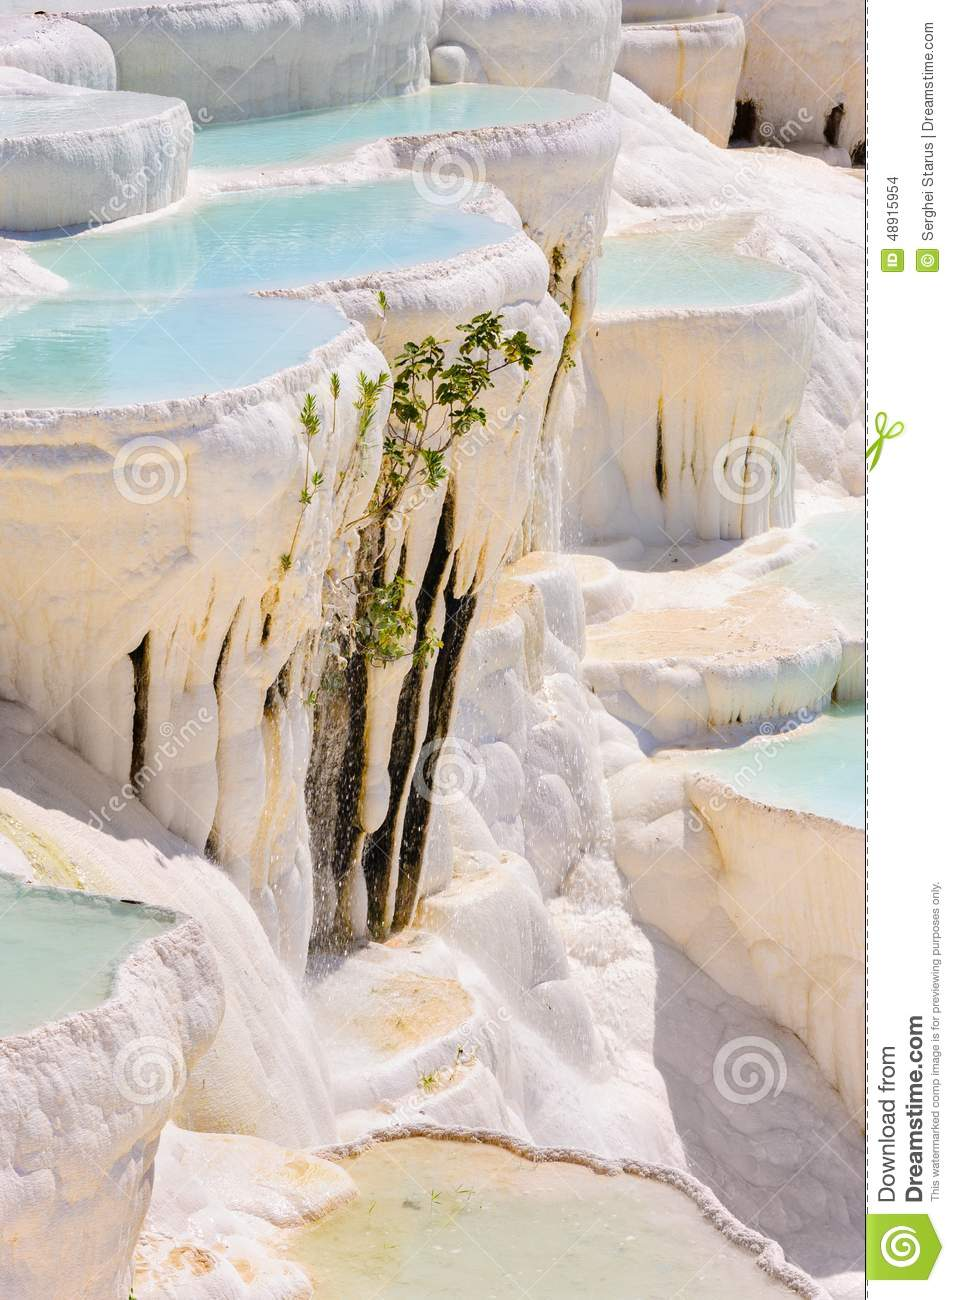 Travertine Pools And Terraces In Pamukkale, Turkey Stock ...